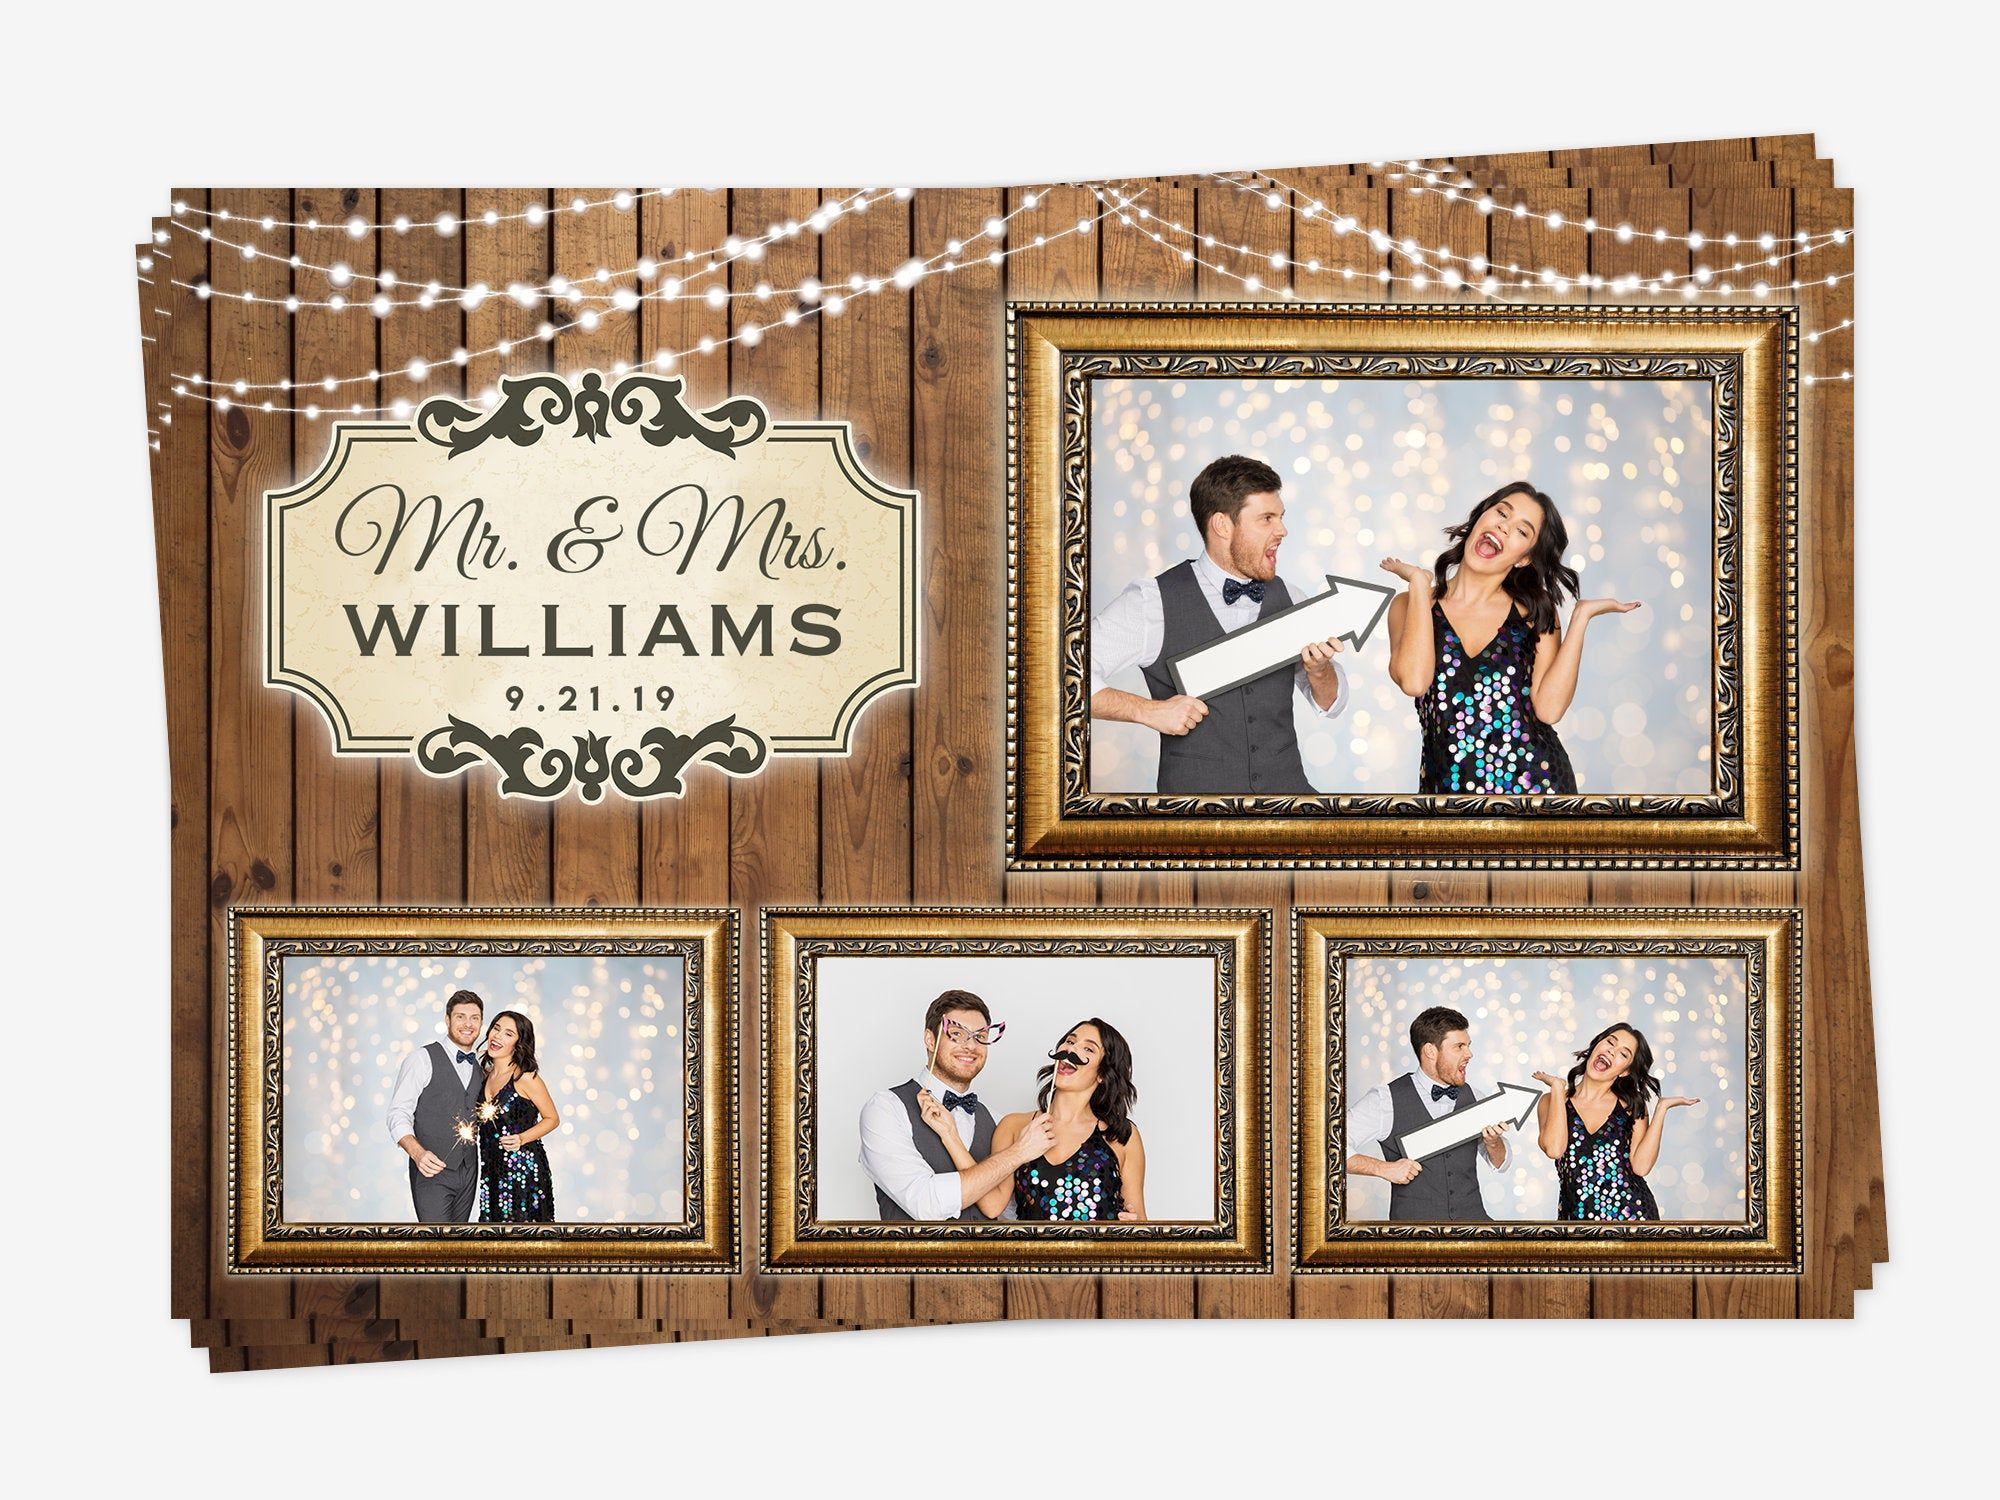 Rustic Photo Booth Template Wedding Photo Booth Template Vintage Photo Booth Template Western Photobooth Template Wedding Photo Booth Graduation Photo Booth